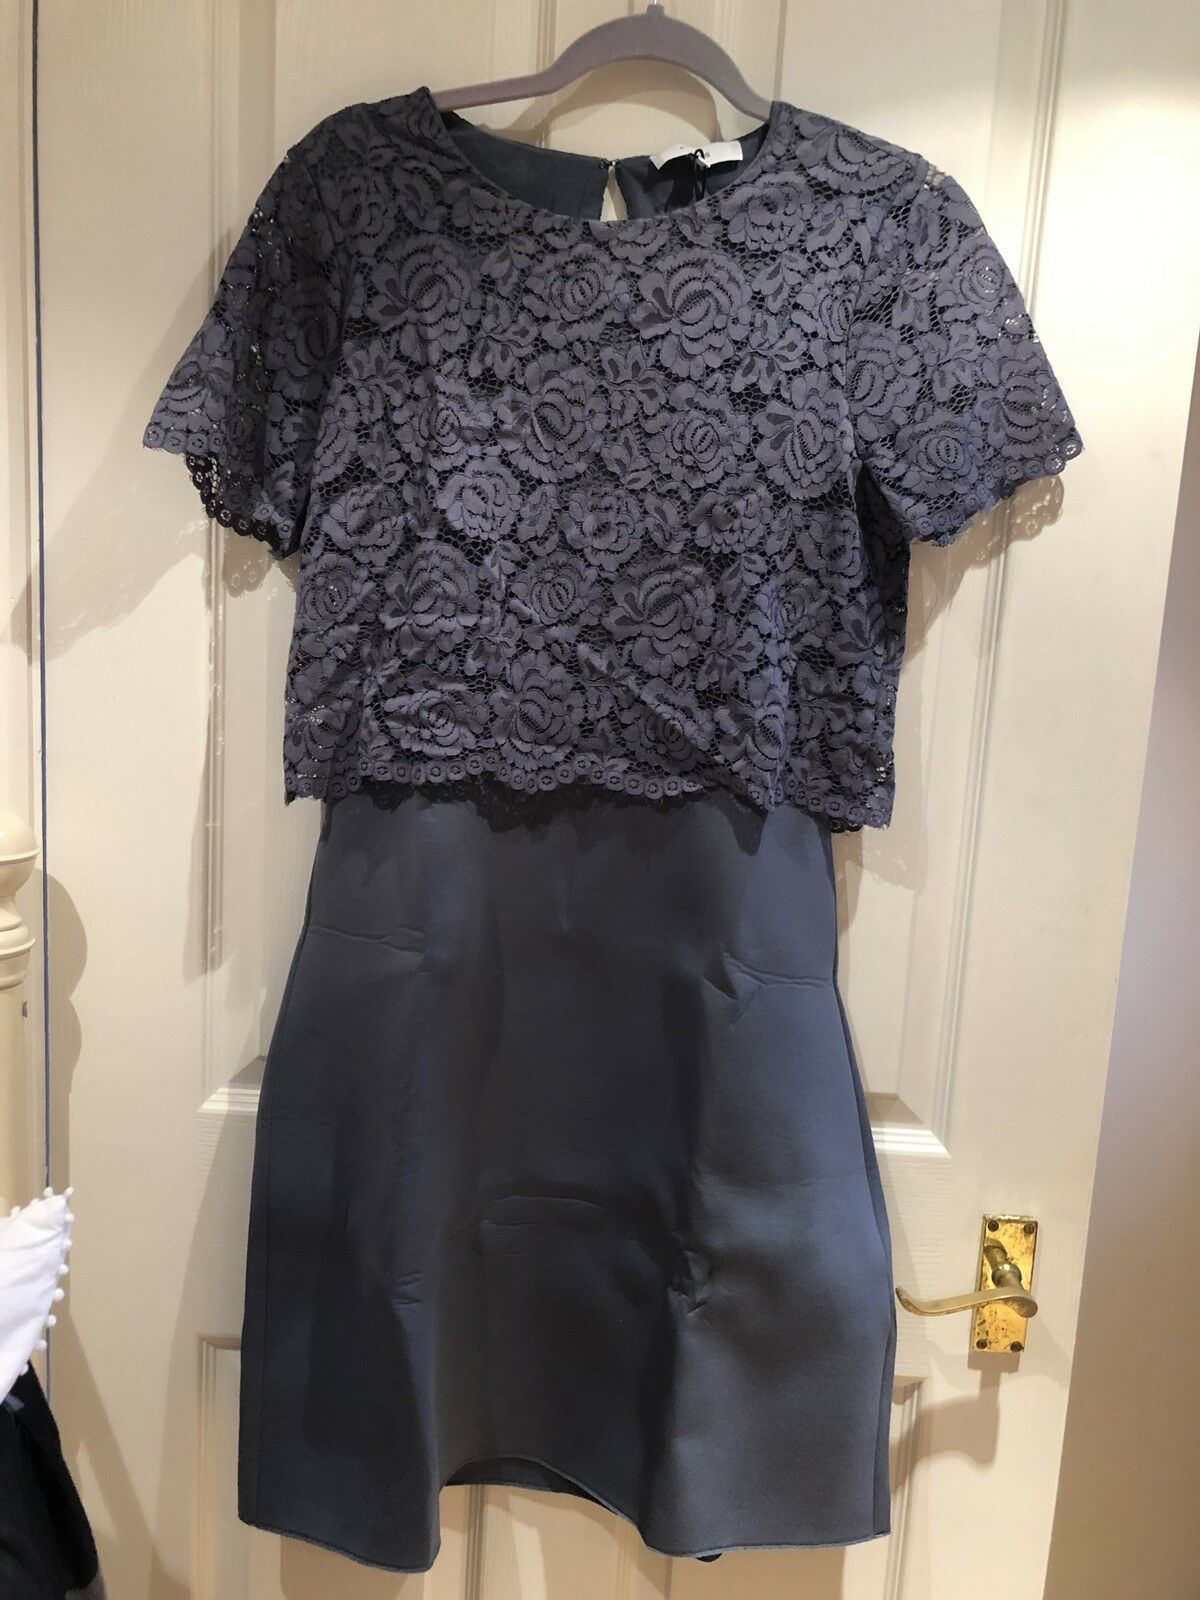 BNWT Reiss Neoprene Scuba Lace Size 12 Knee Length Dusty bluee Dress